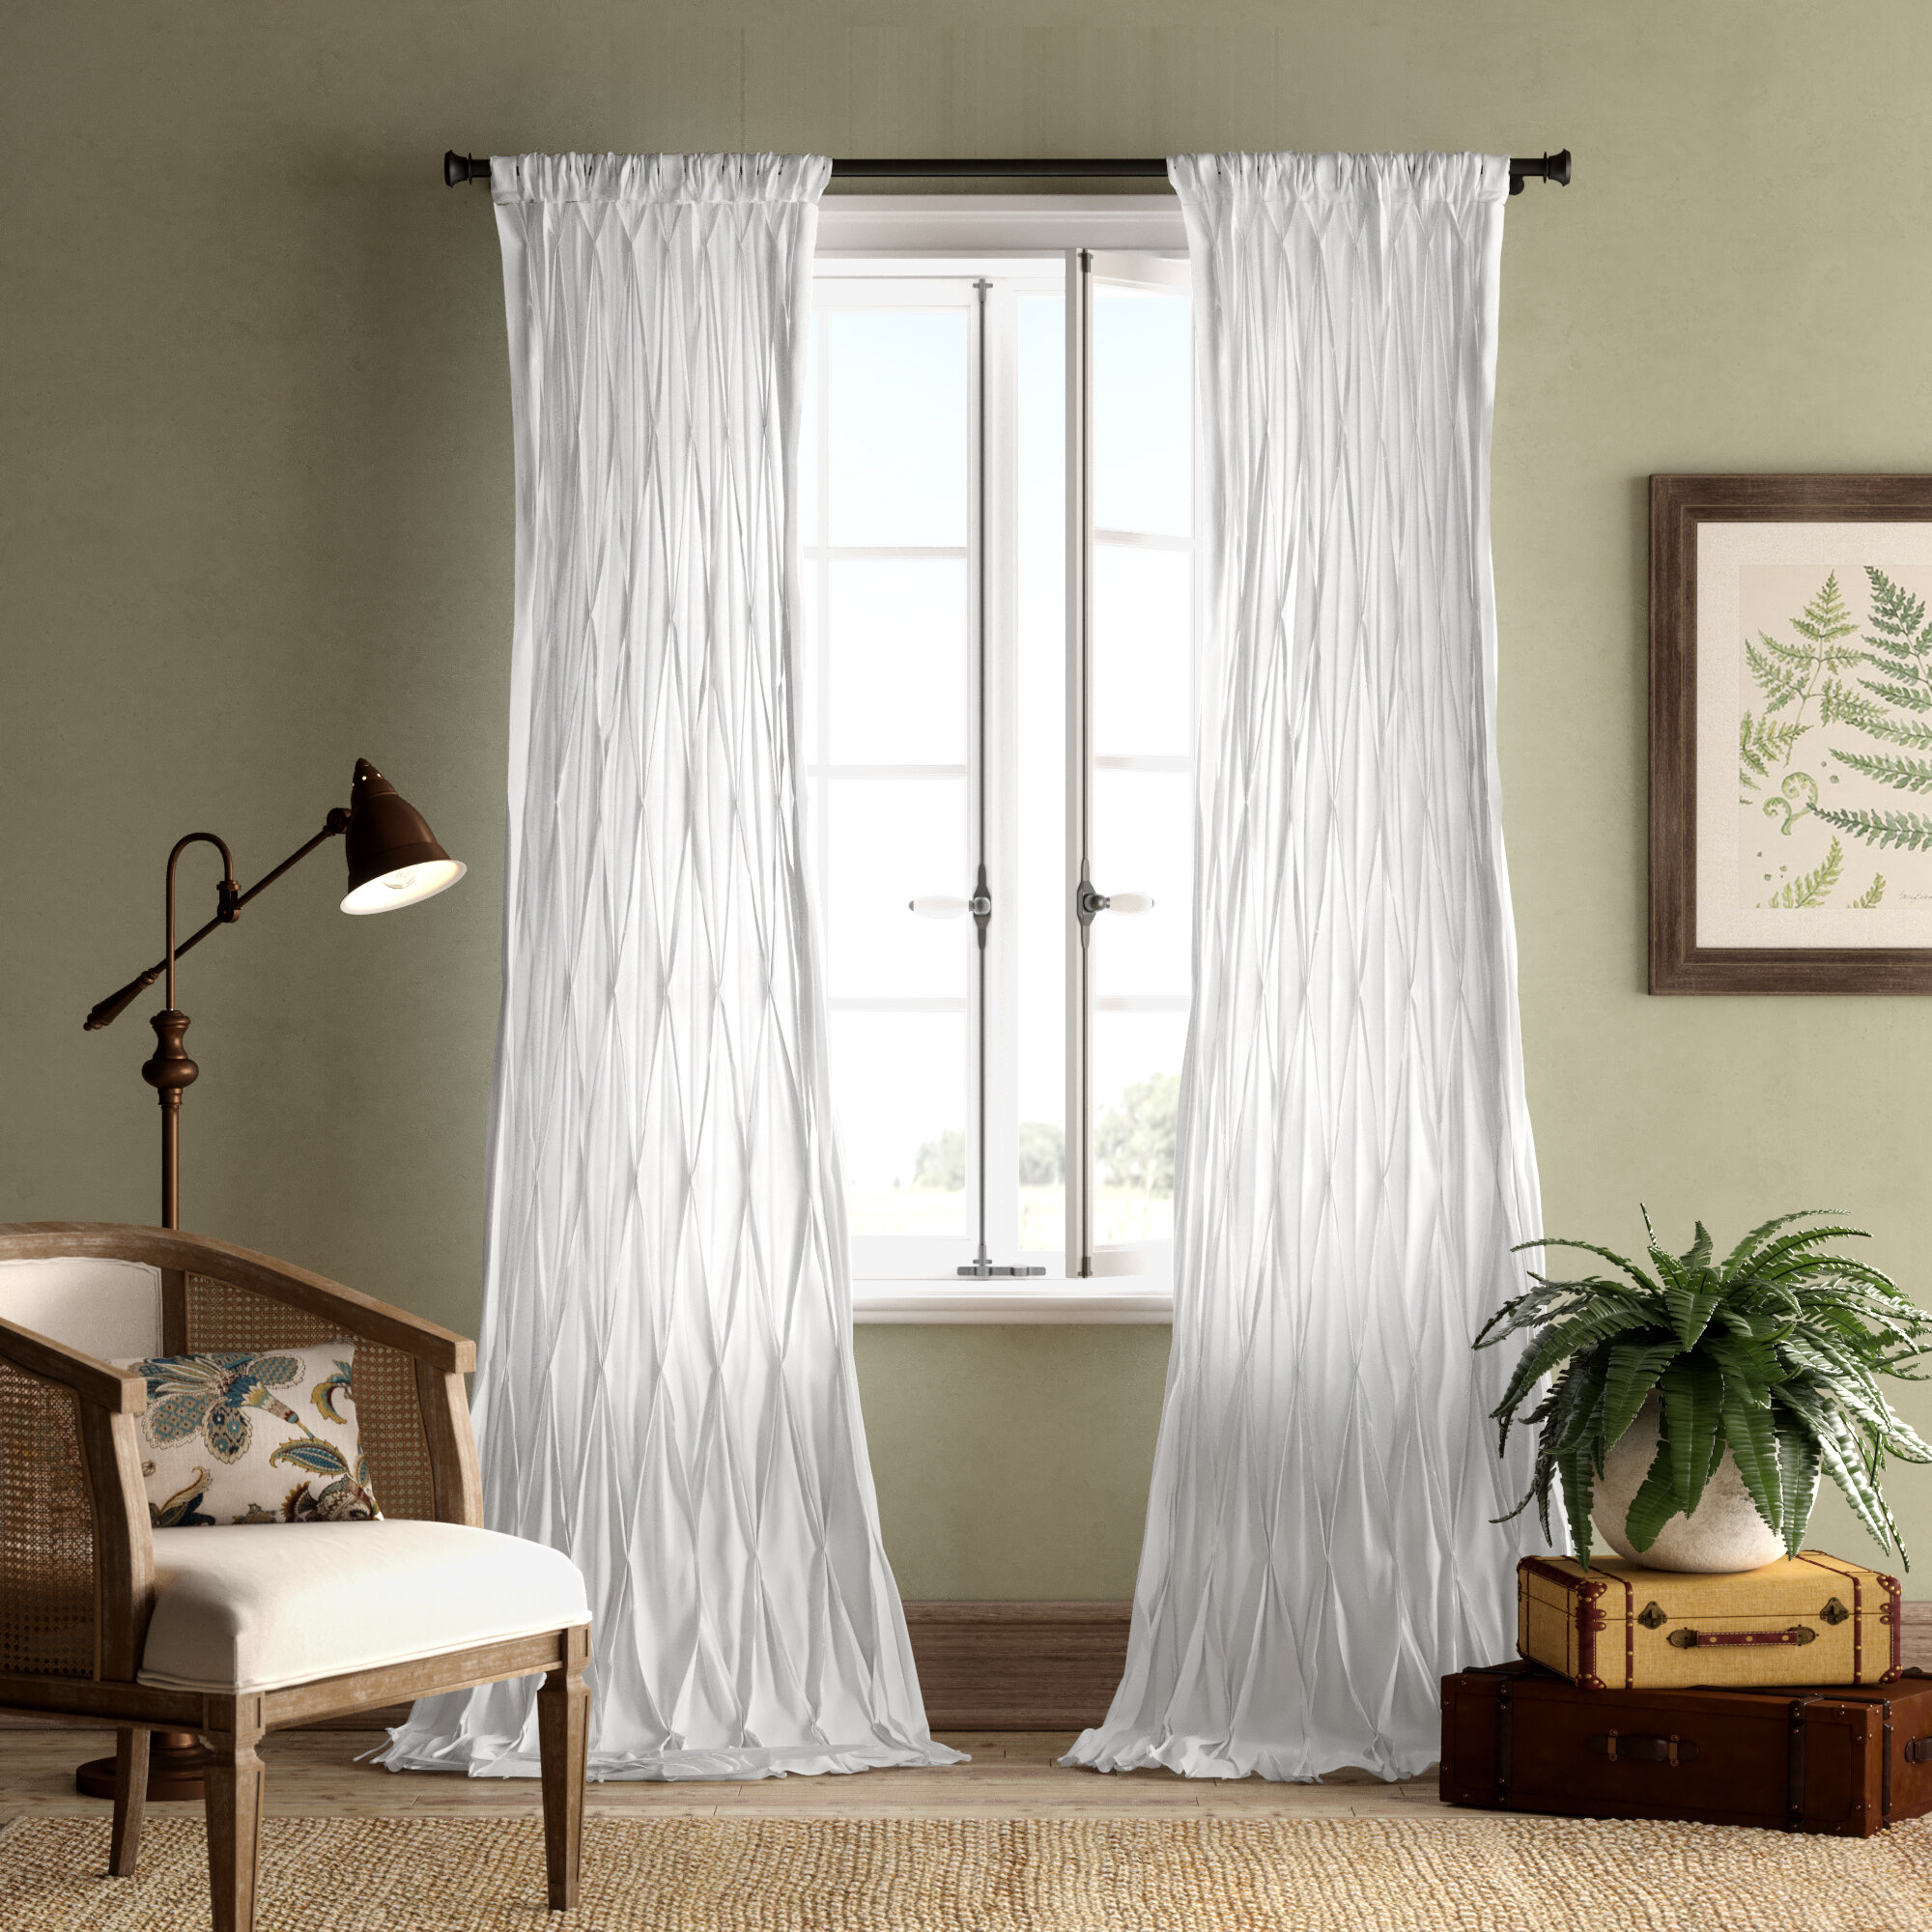 Casimiro Cotton Voile Solid Sheer Pinch Pleat Single Curtain Panel Intended For Solid Cotton Curtain Panels (View 13 of 30)